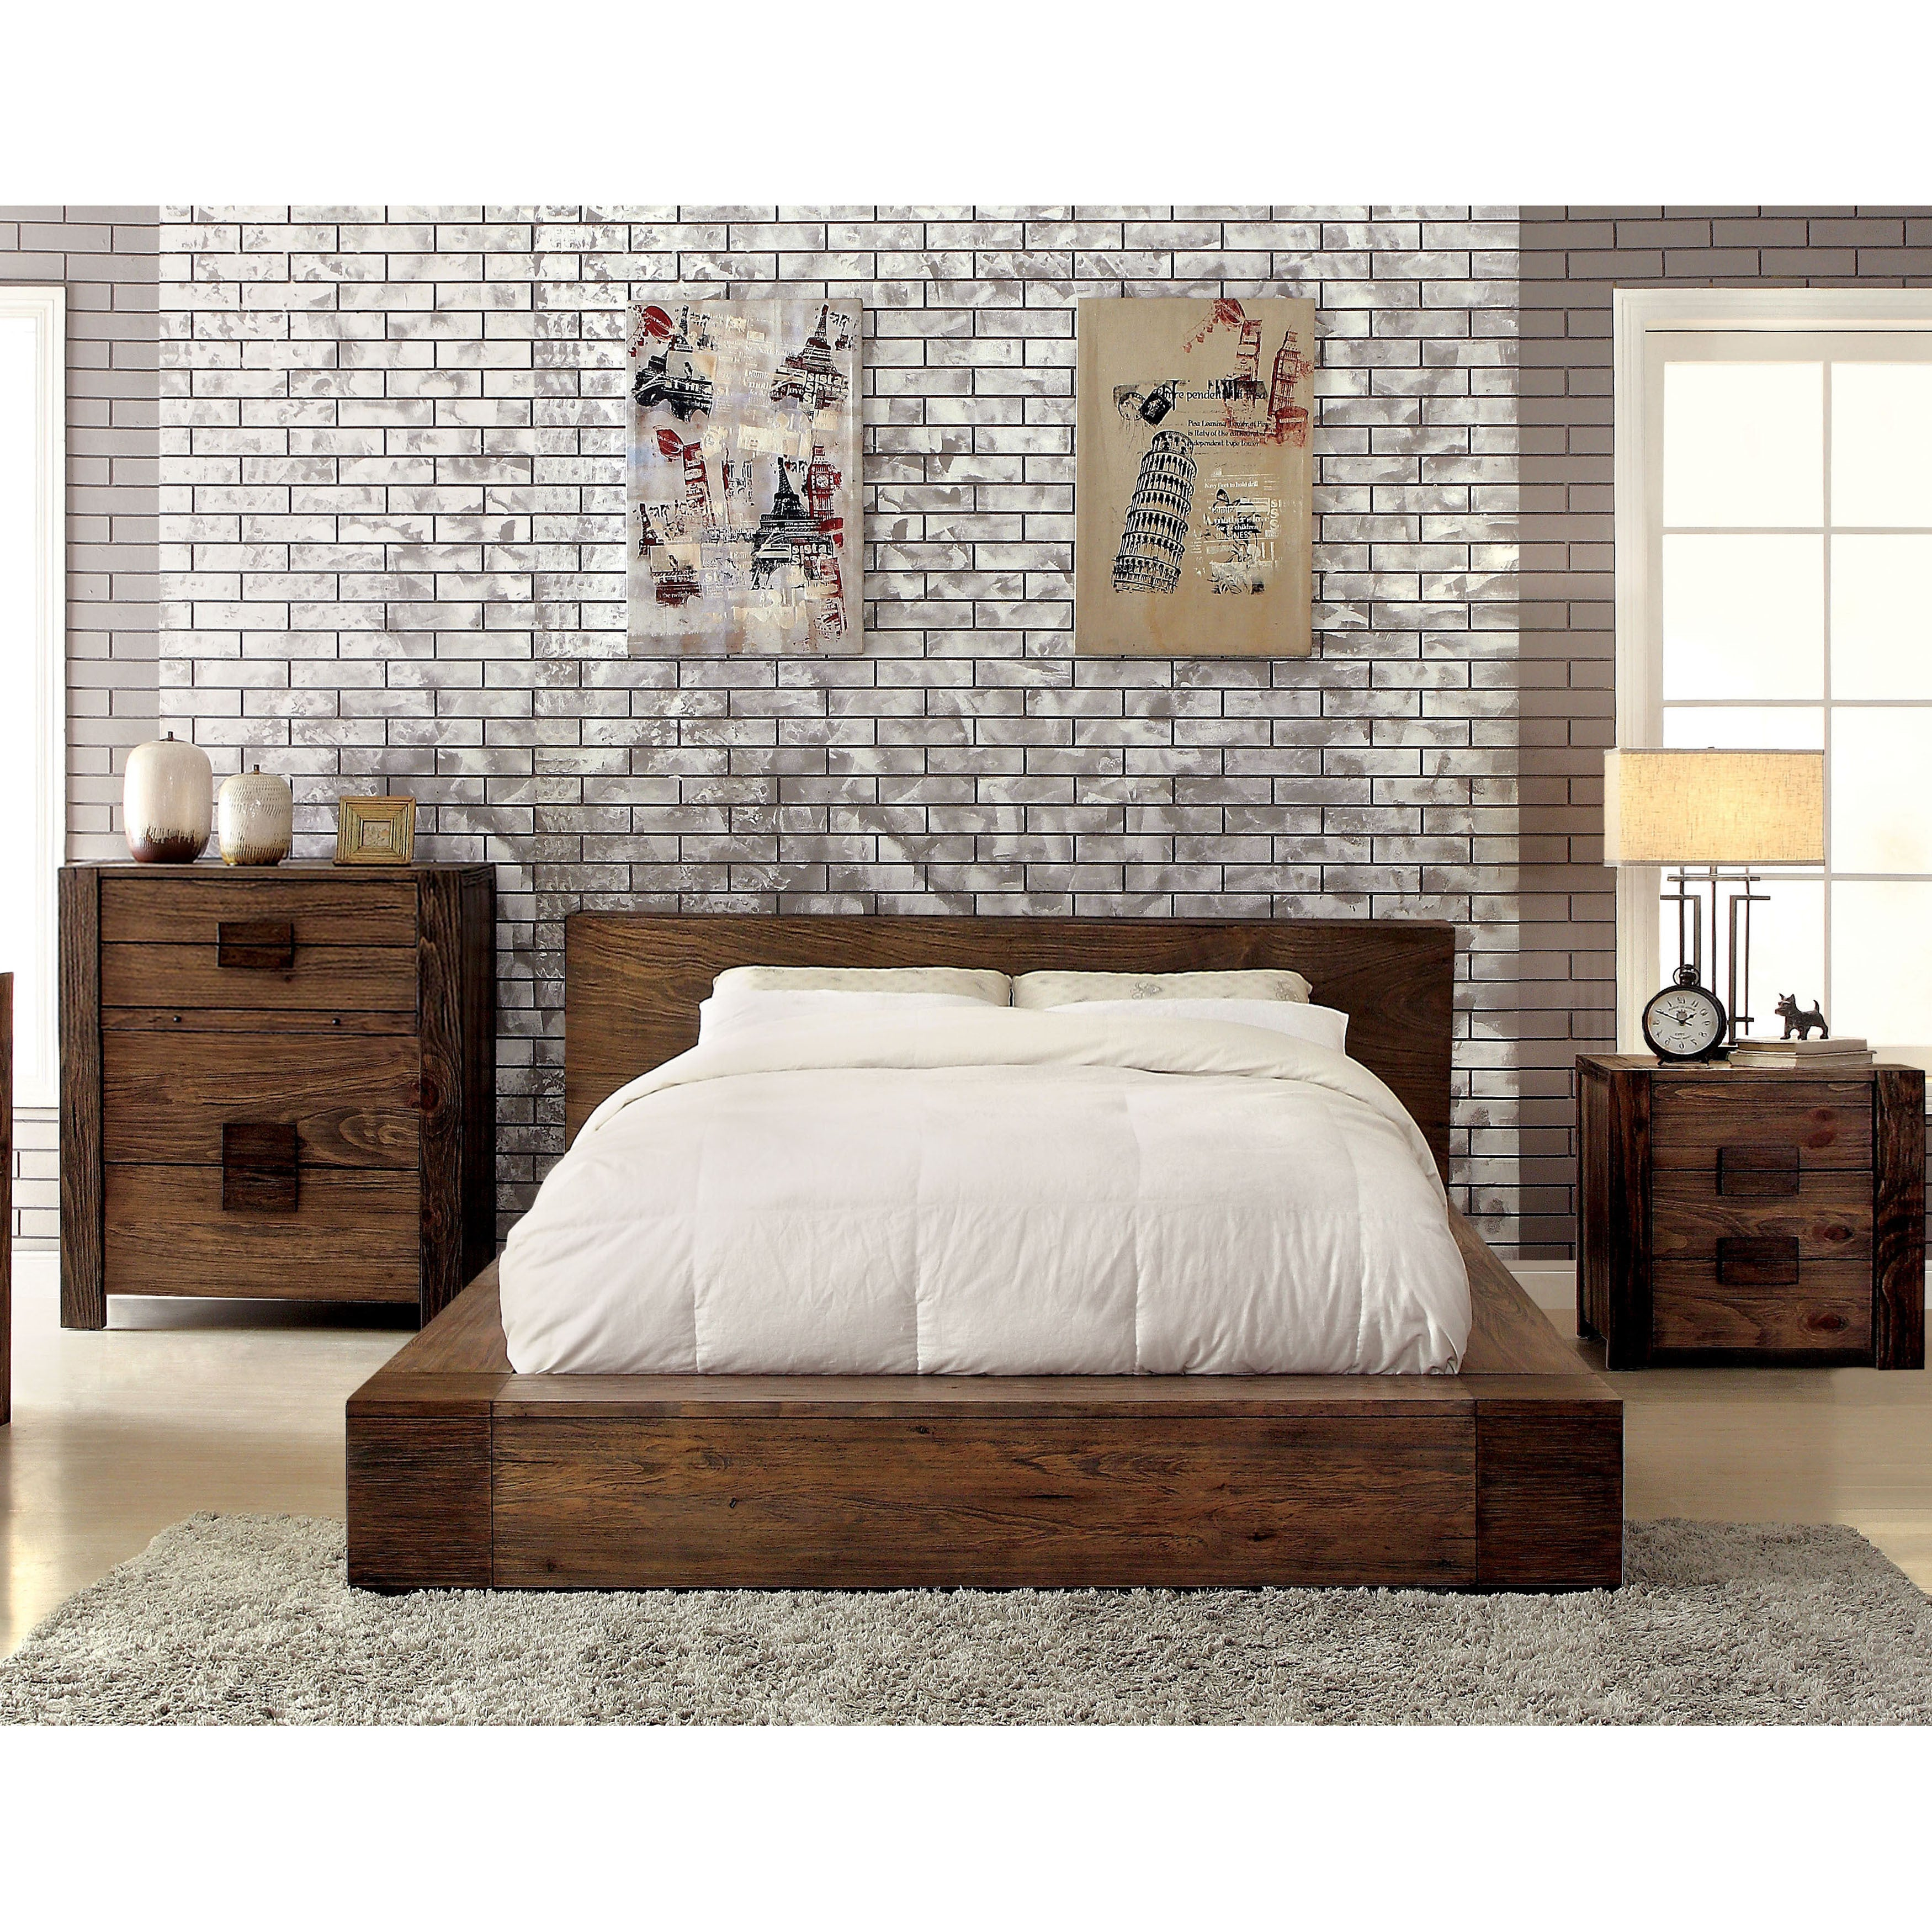 Ordinaire Furniture Of America Shaylen I Rustic 3 Piece Natural Tone Low Profile  Bedroom Set